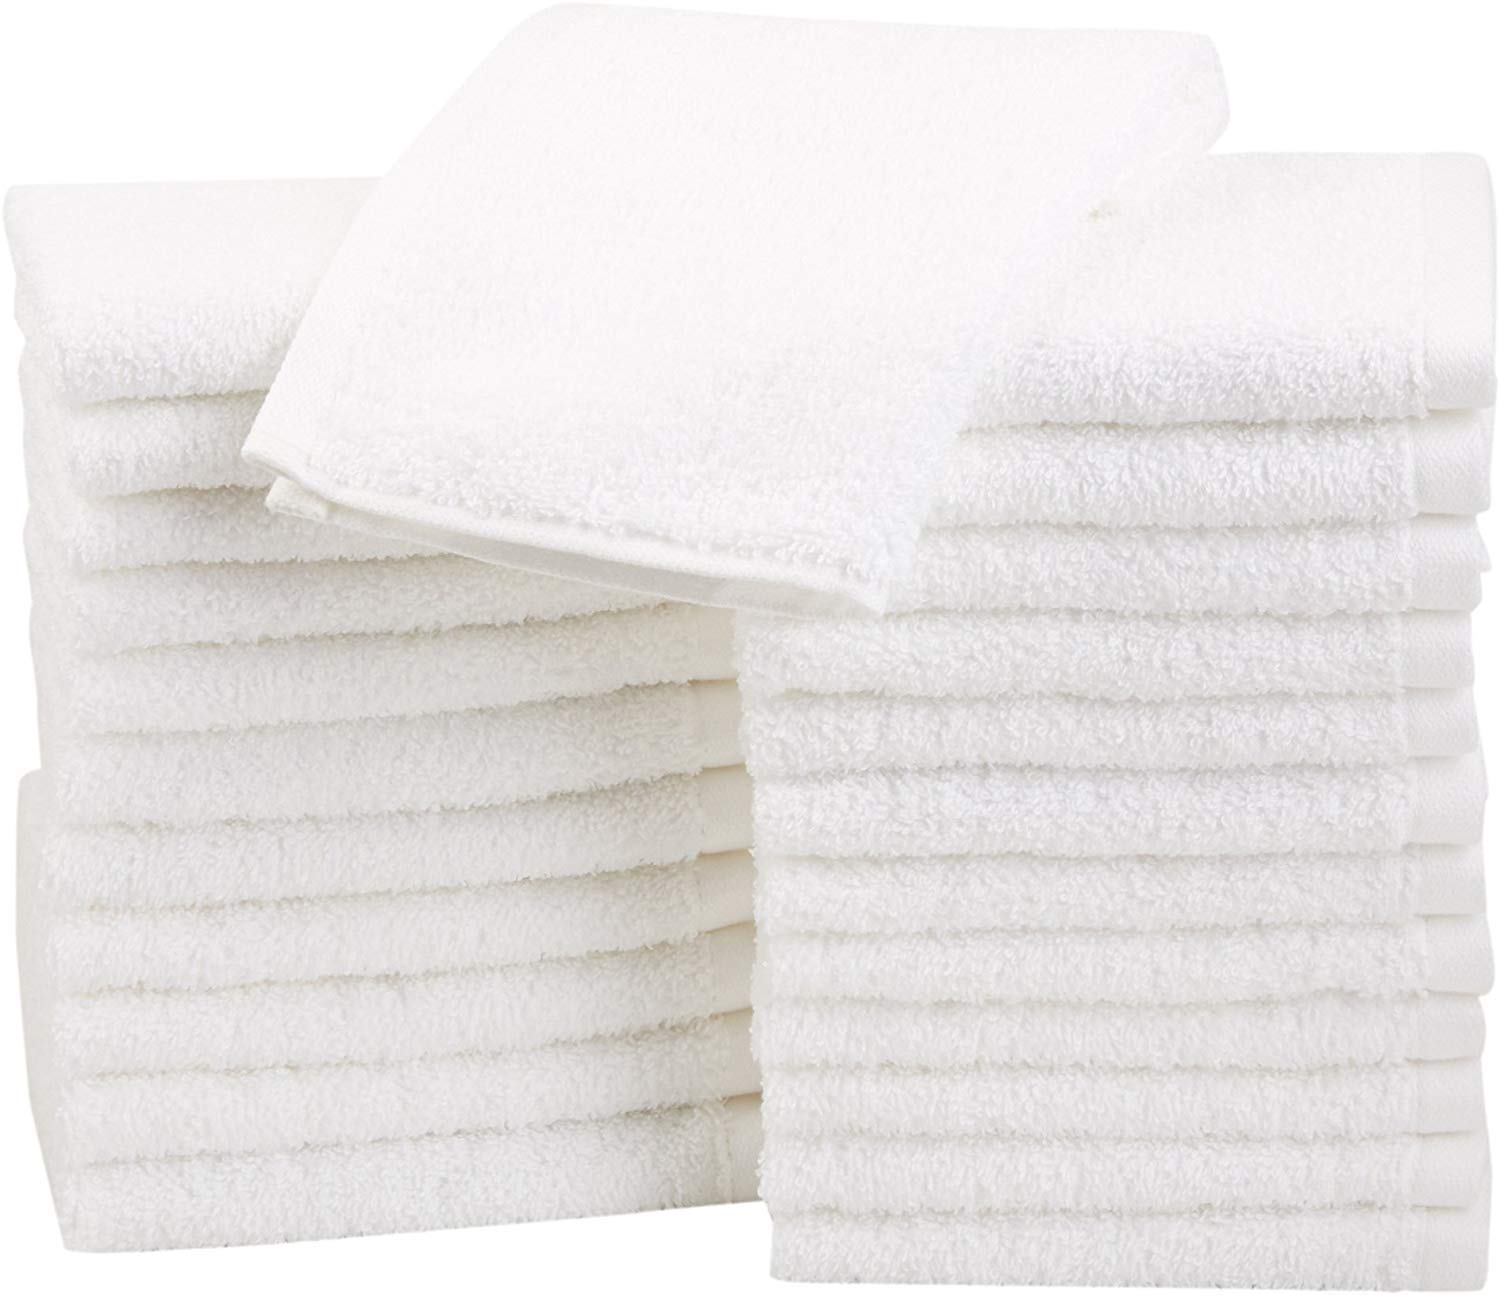 Amazon Basics Fast Drying, Extra Absorbent, Terry Cotton Washcloths, White - Pack of 24